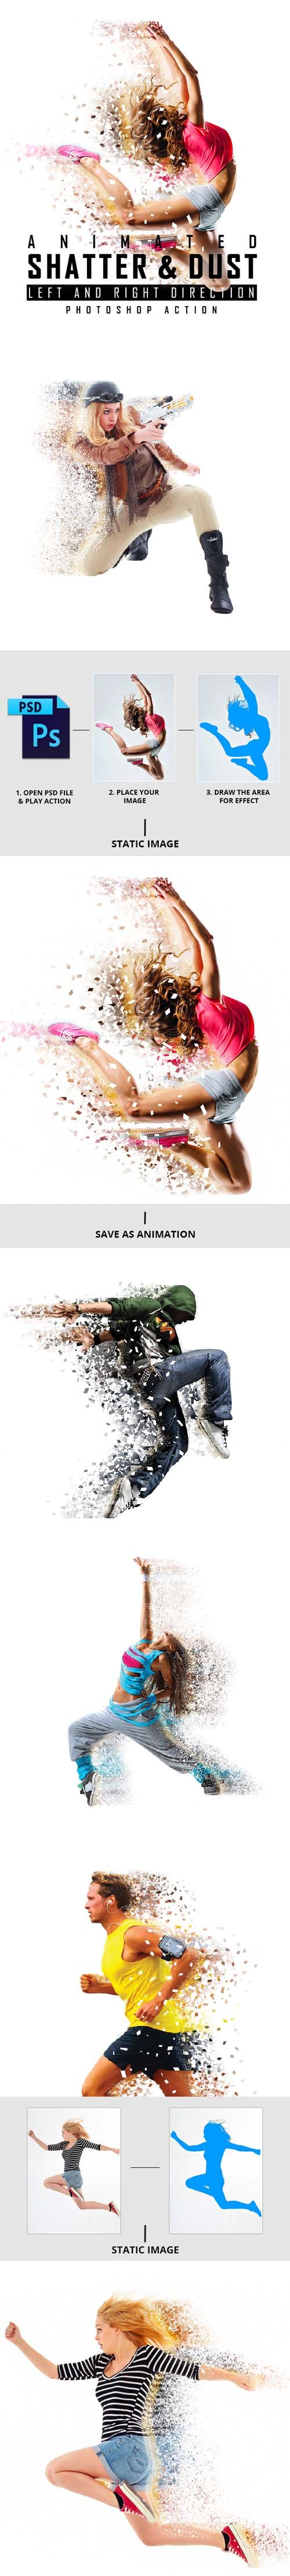 GR - Animated Shatter And Dust Photoshop Action 19731726